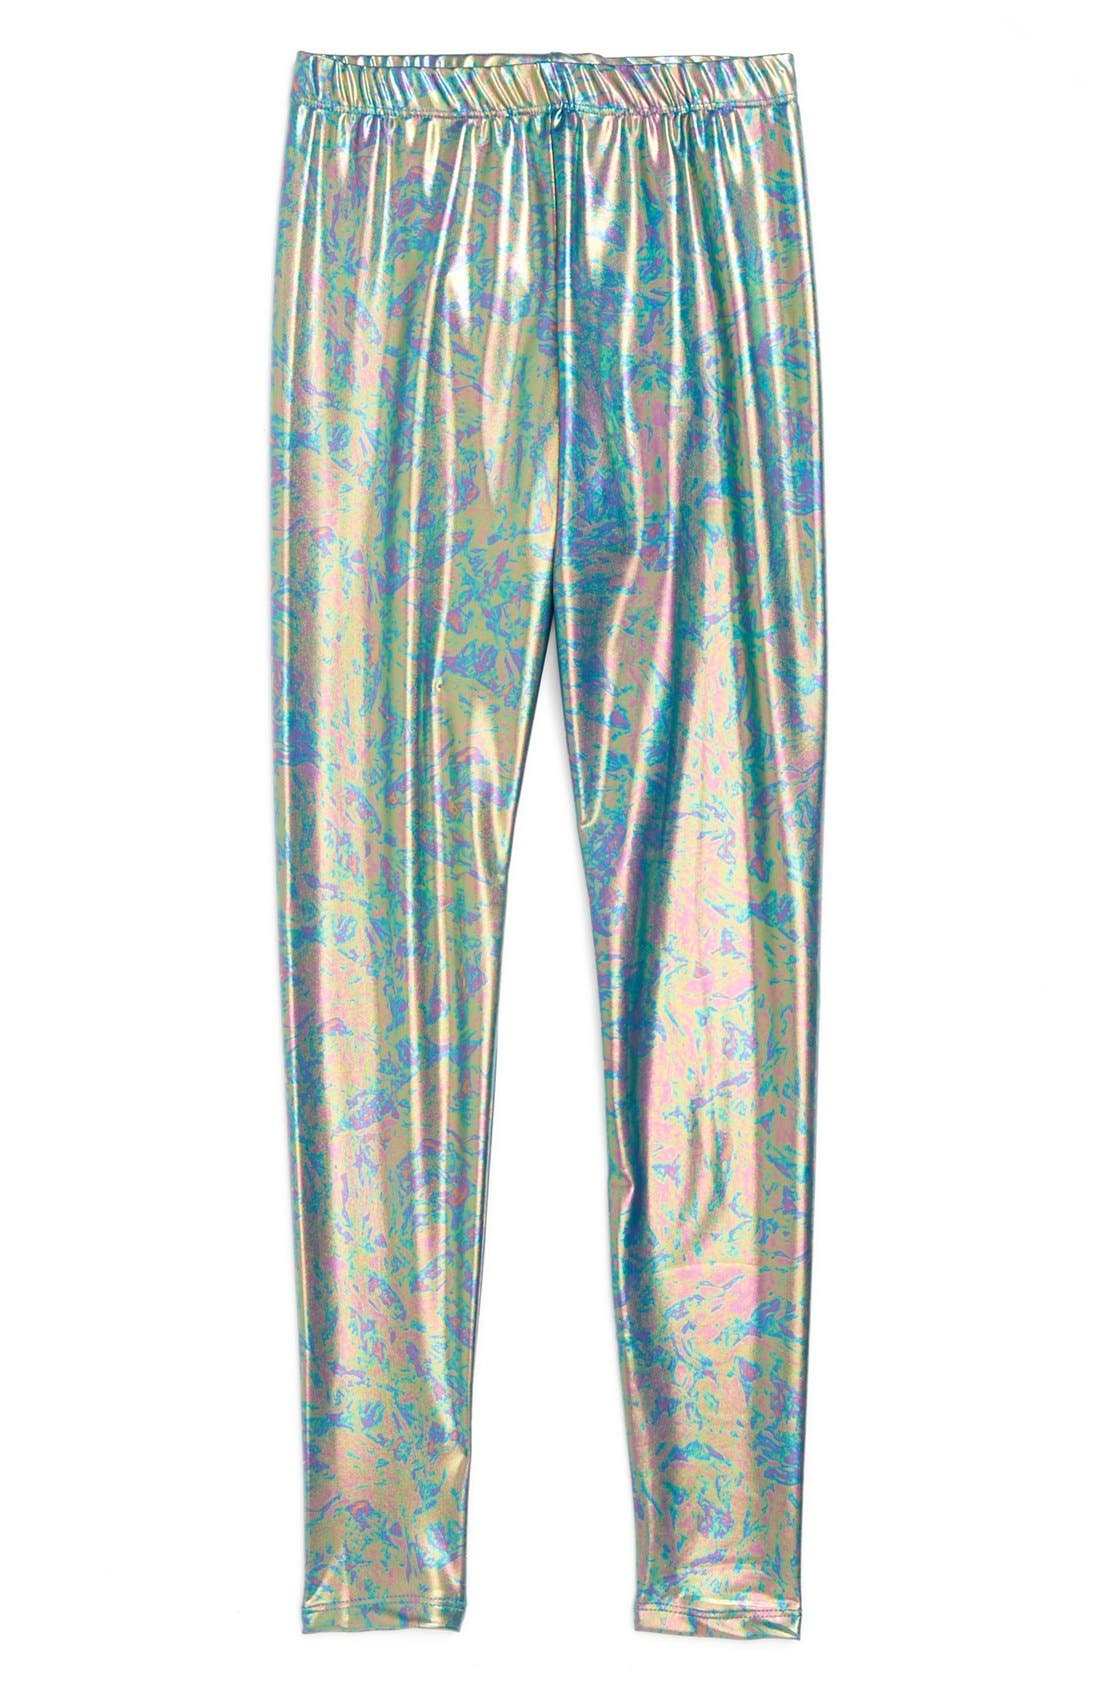 Alternate Image 1 Selected - Terez Metallic Print Leggings (Big Girls)